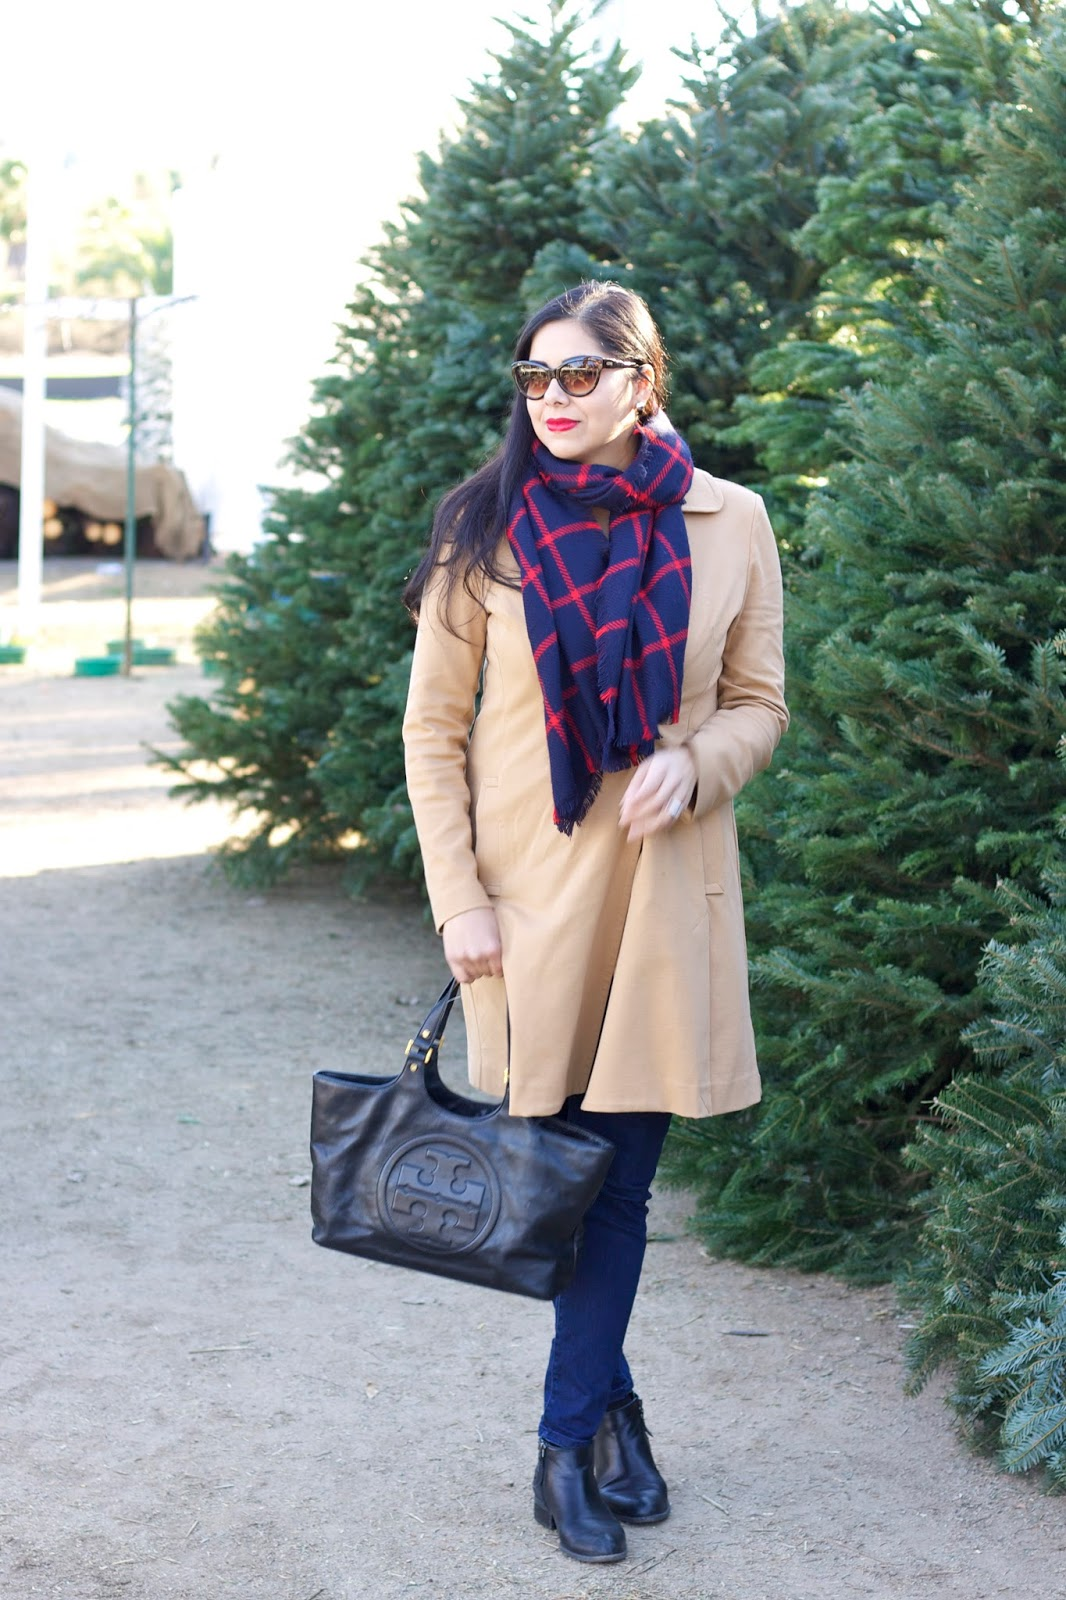 socal fashion blogger, cabi knight jeans, tory burch satchel, cute casual holiday look, casual winter look